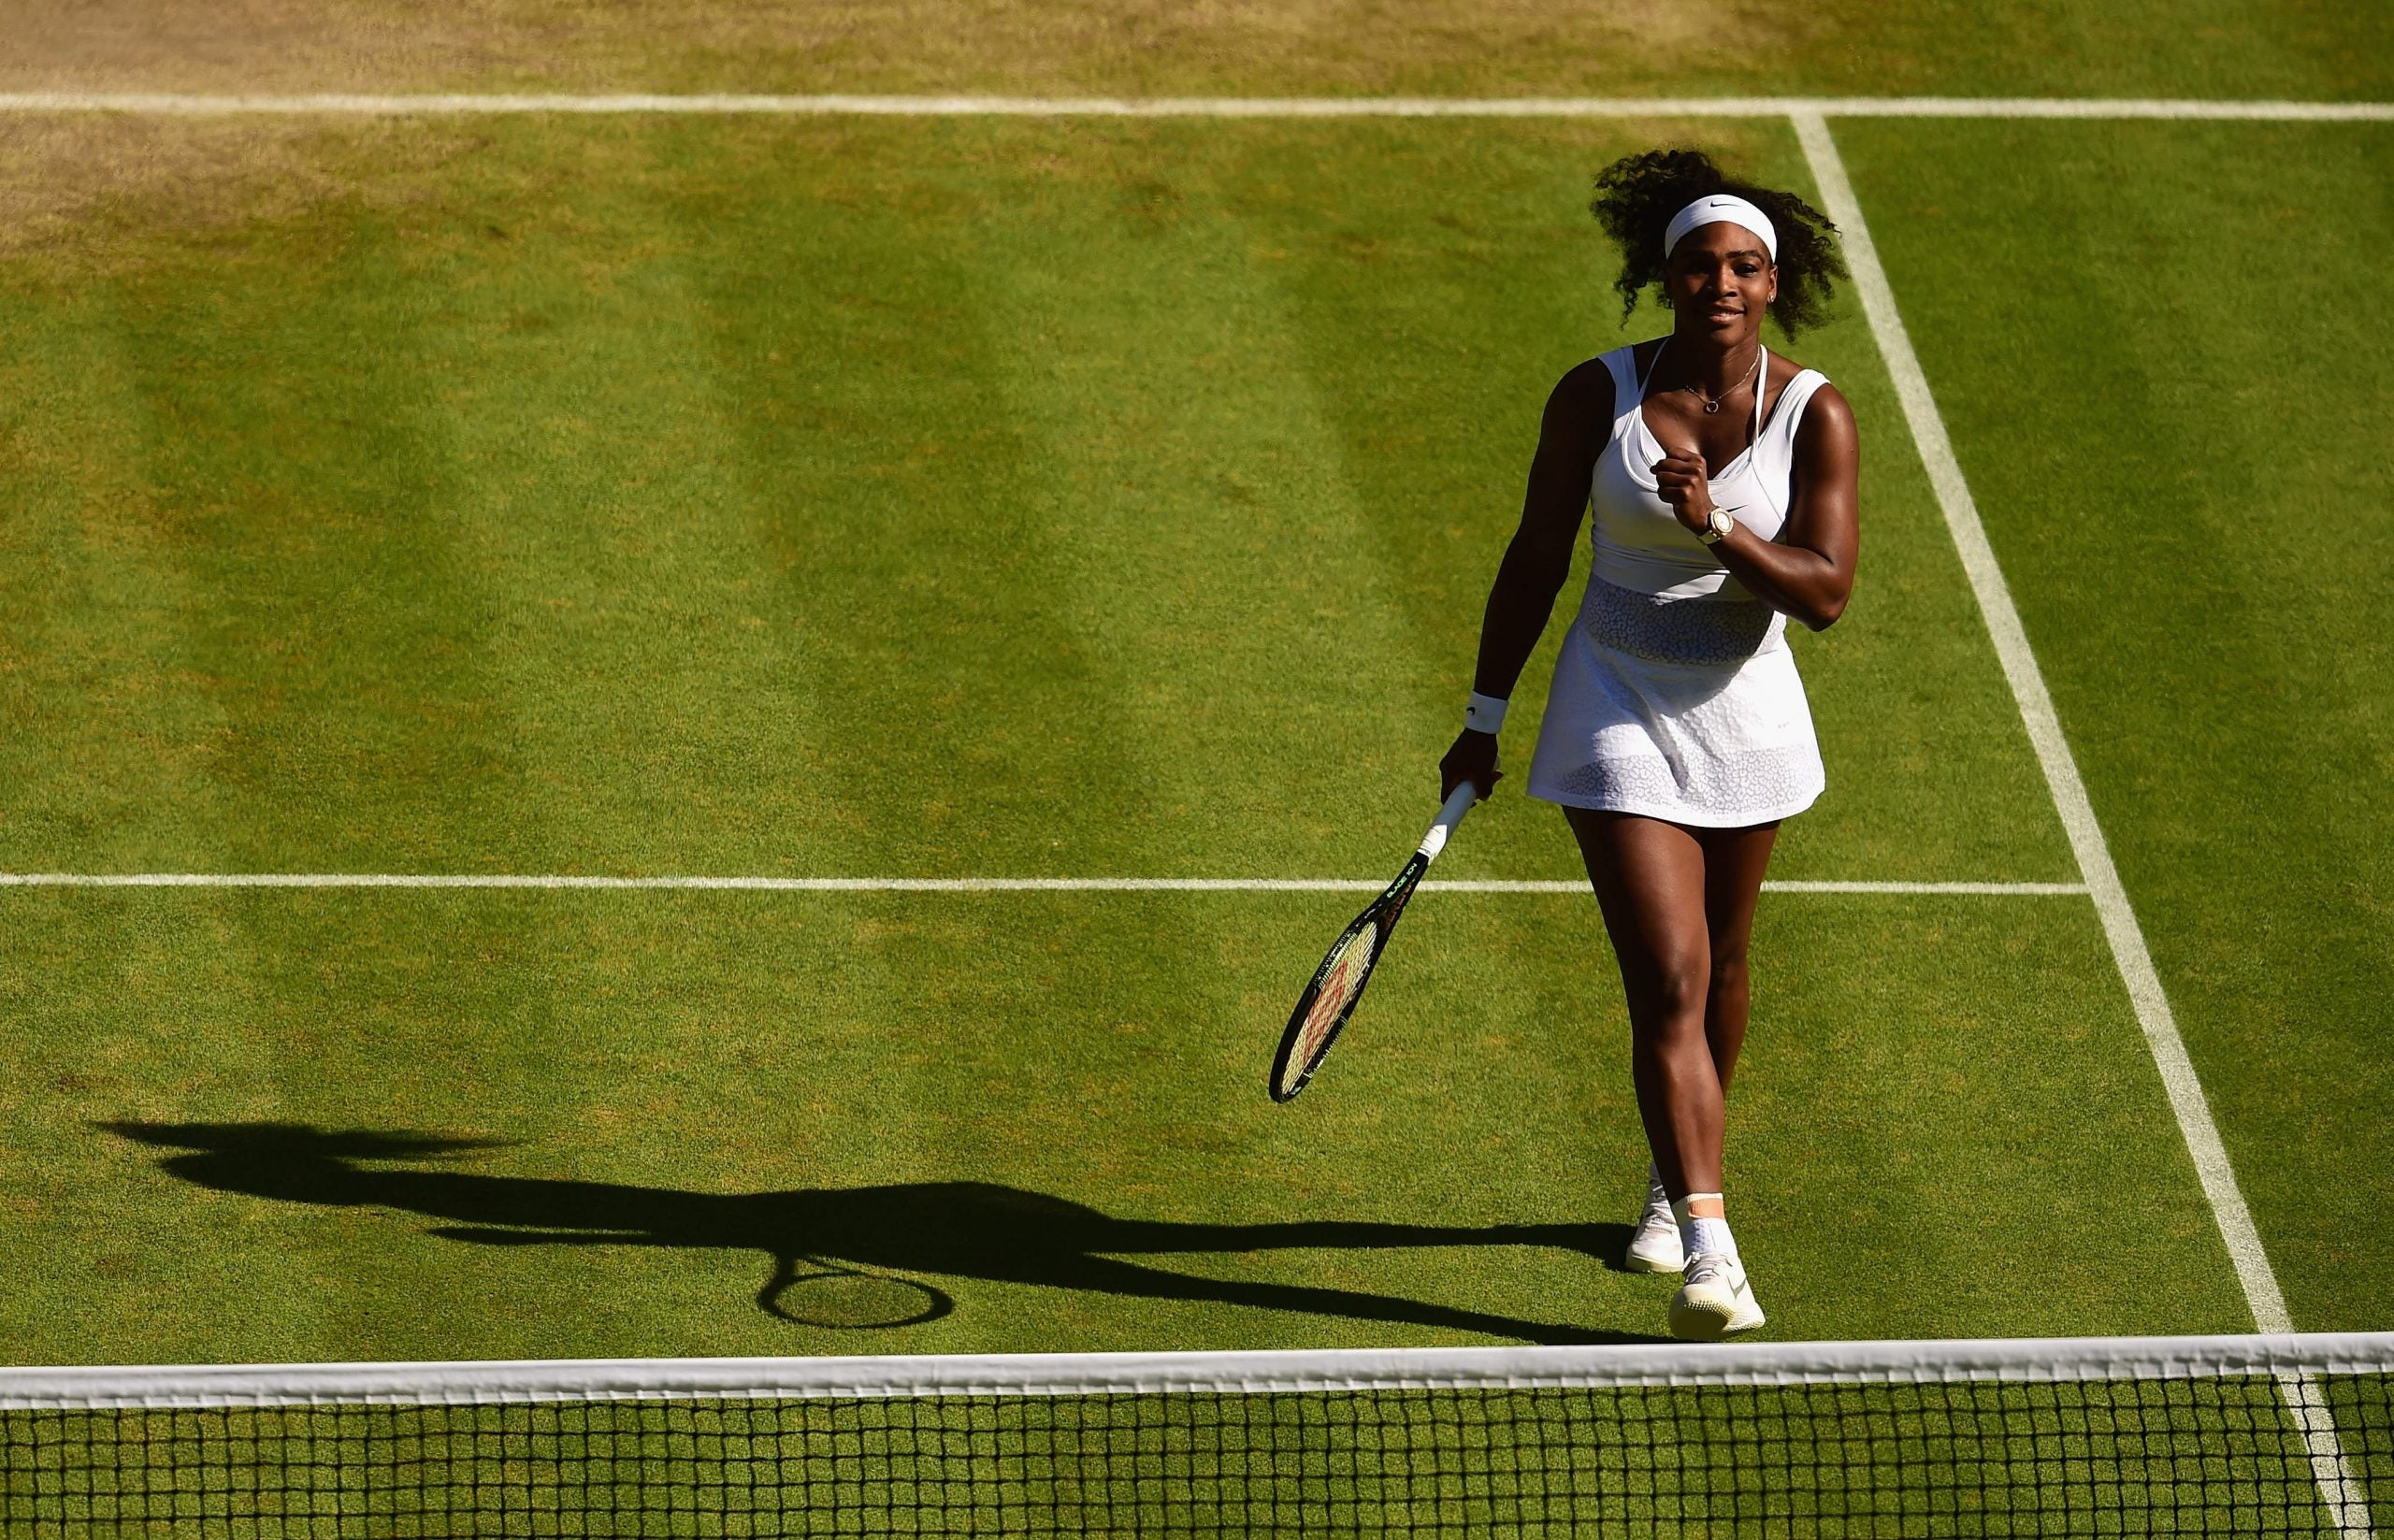 Sport's gender pay gap: why are women still paid less than men?